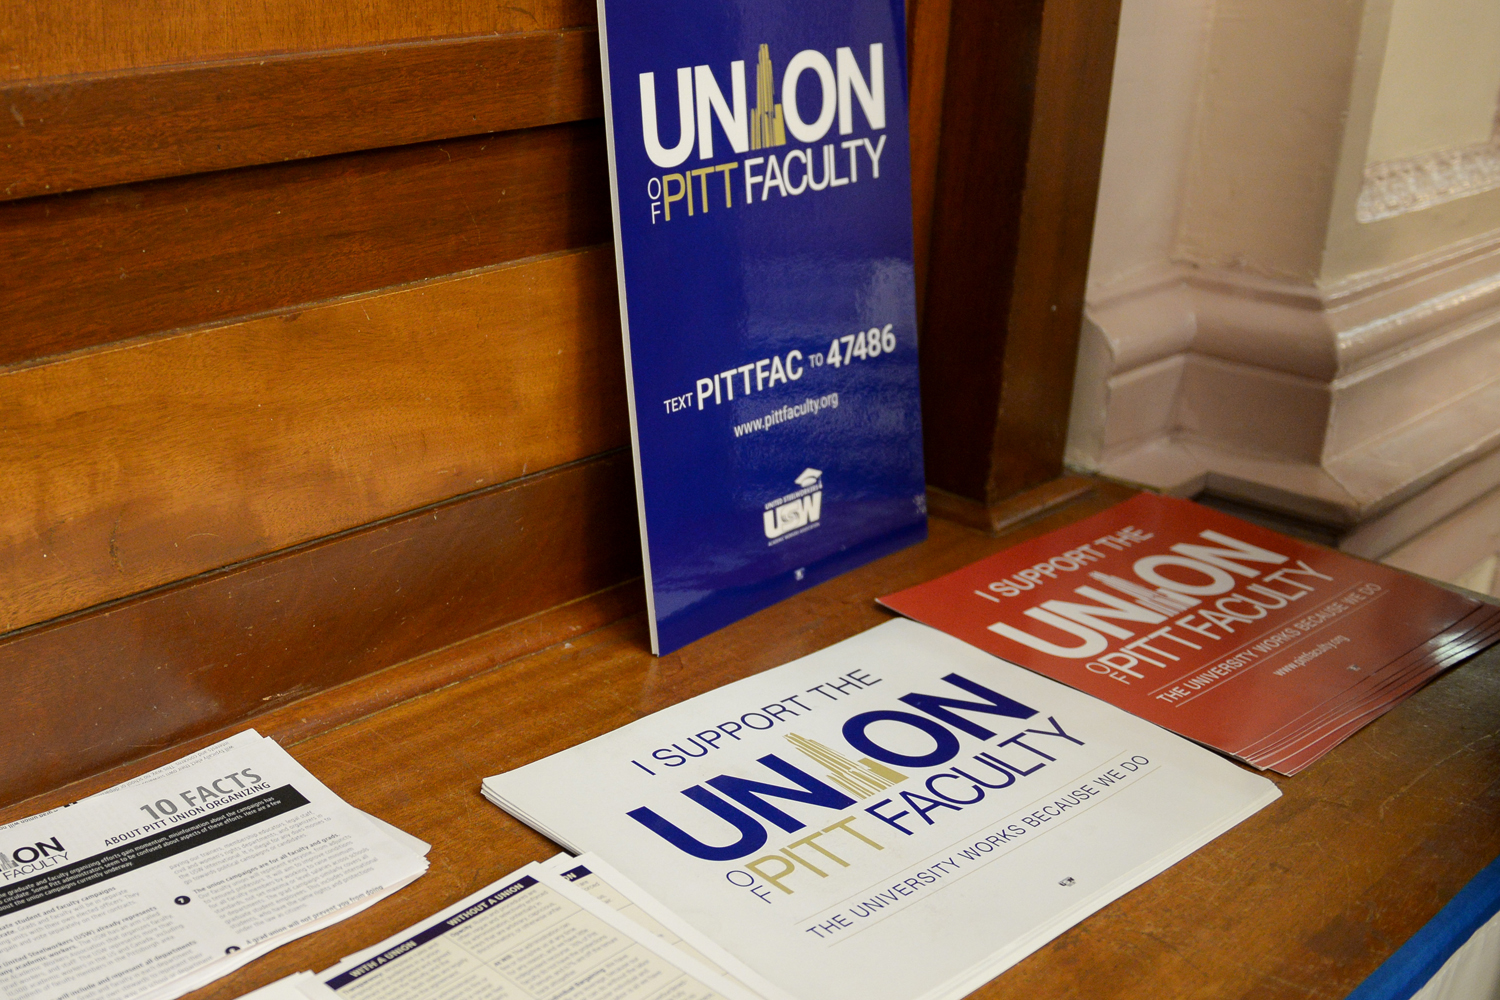 Faculty union organizers challenged hundreds of the names Pitt included in its list of faculty eligible for a bargaining unit.